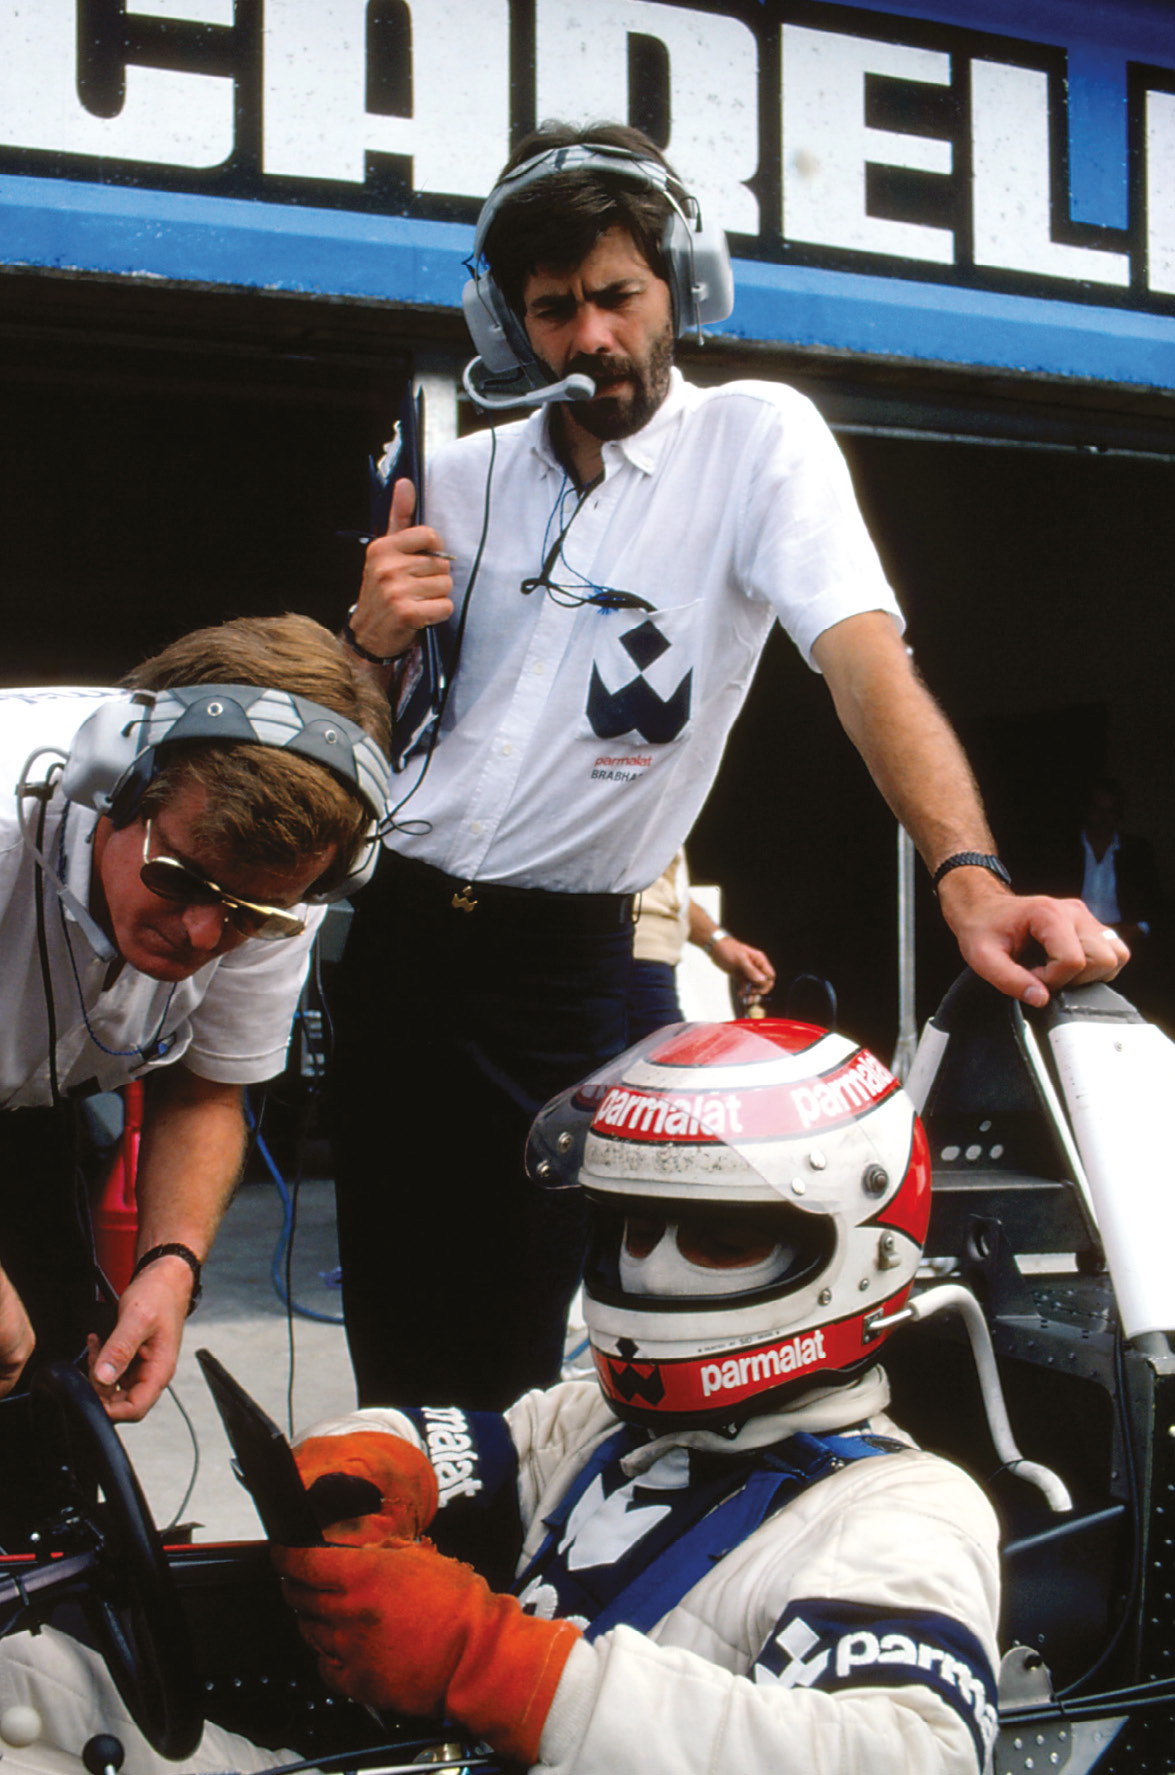 Gordon Murray made his name with Brabham before moving on to McLaren where he played a part in the MP4/4 design